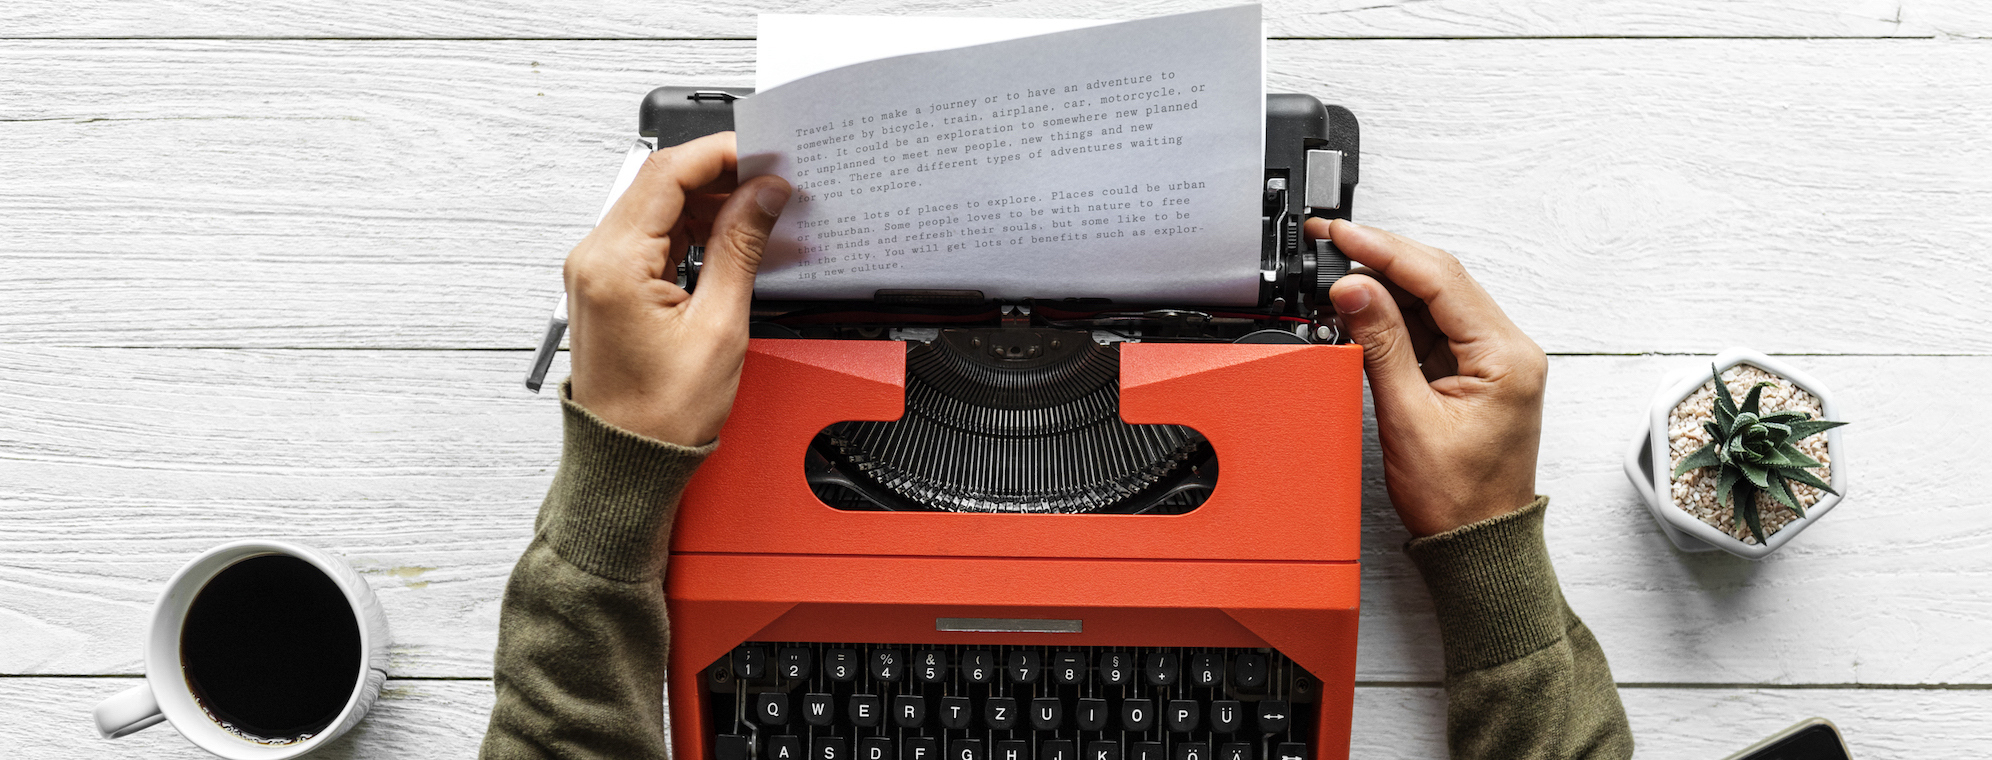 Aerial view of a man typing on a retro typewriter